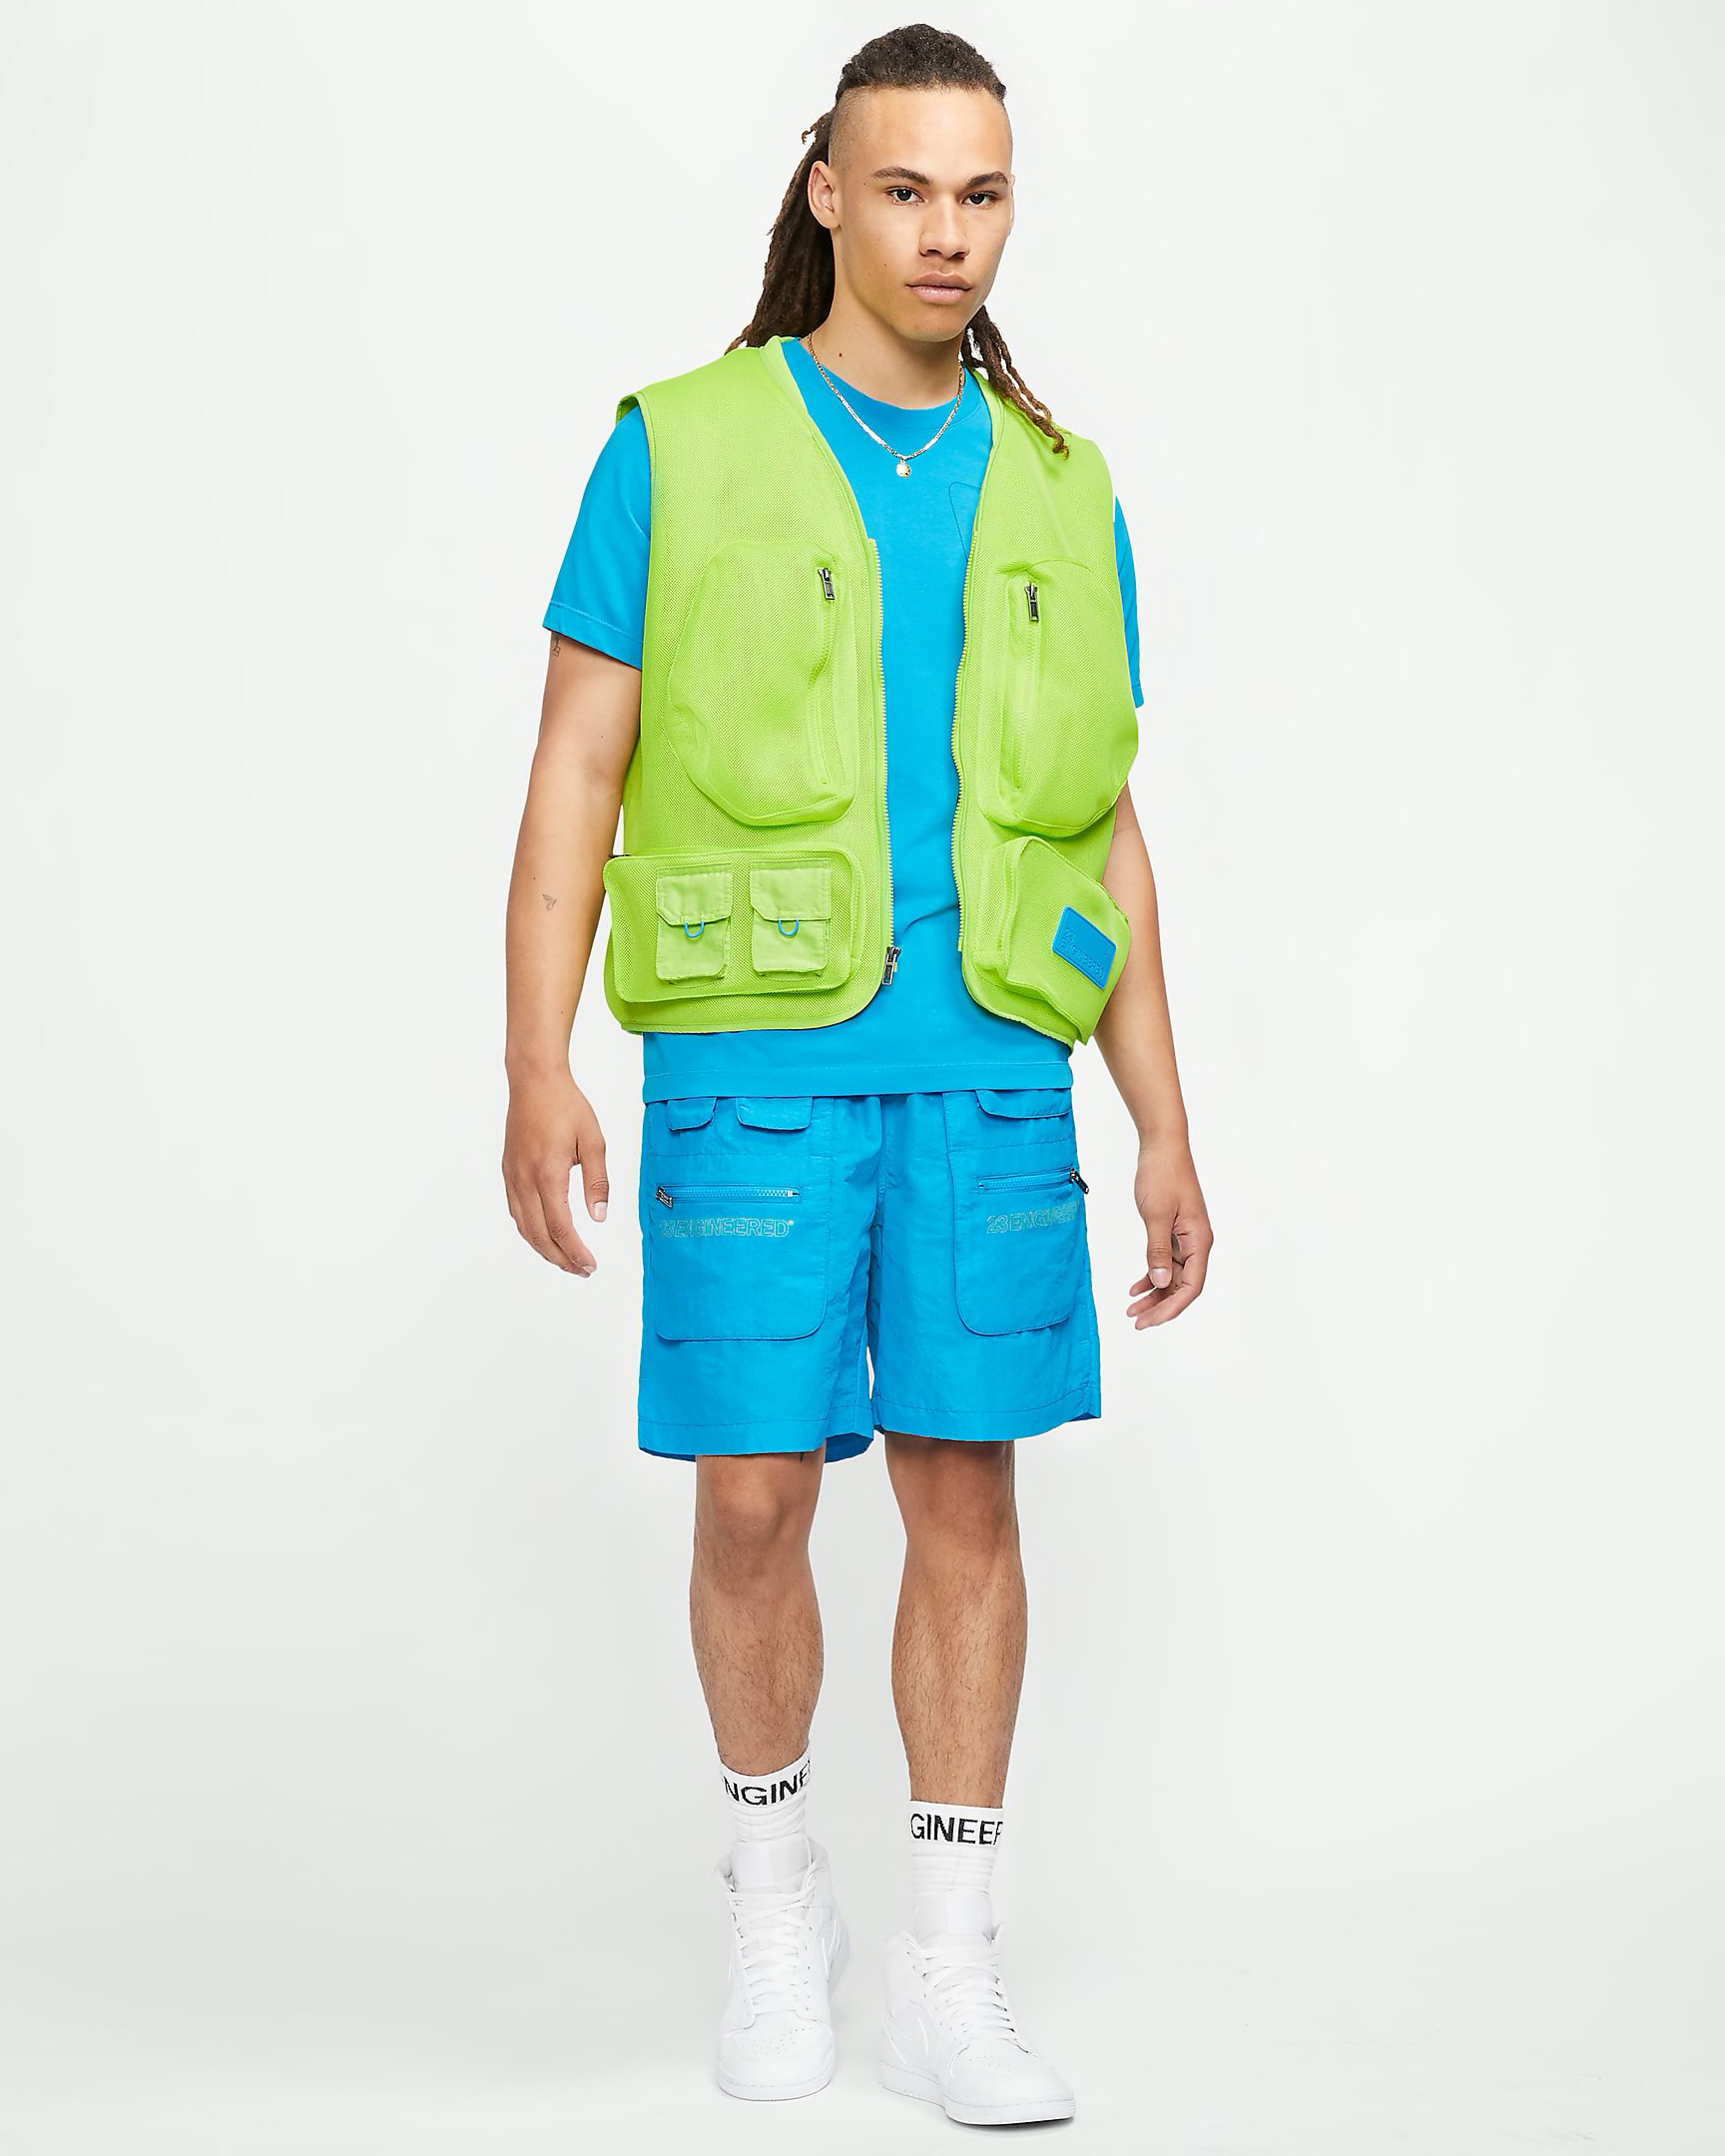 jordan-23-engineered-vest-green-blue-4